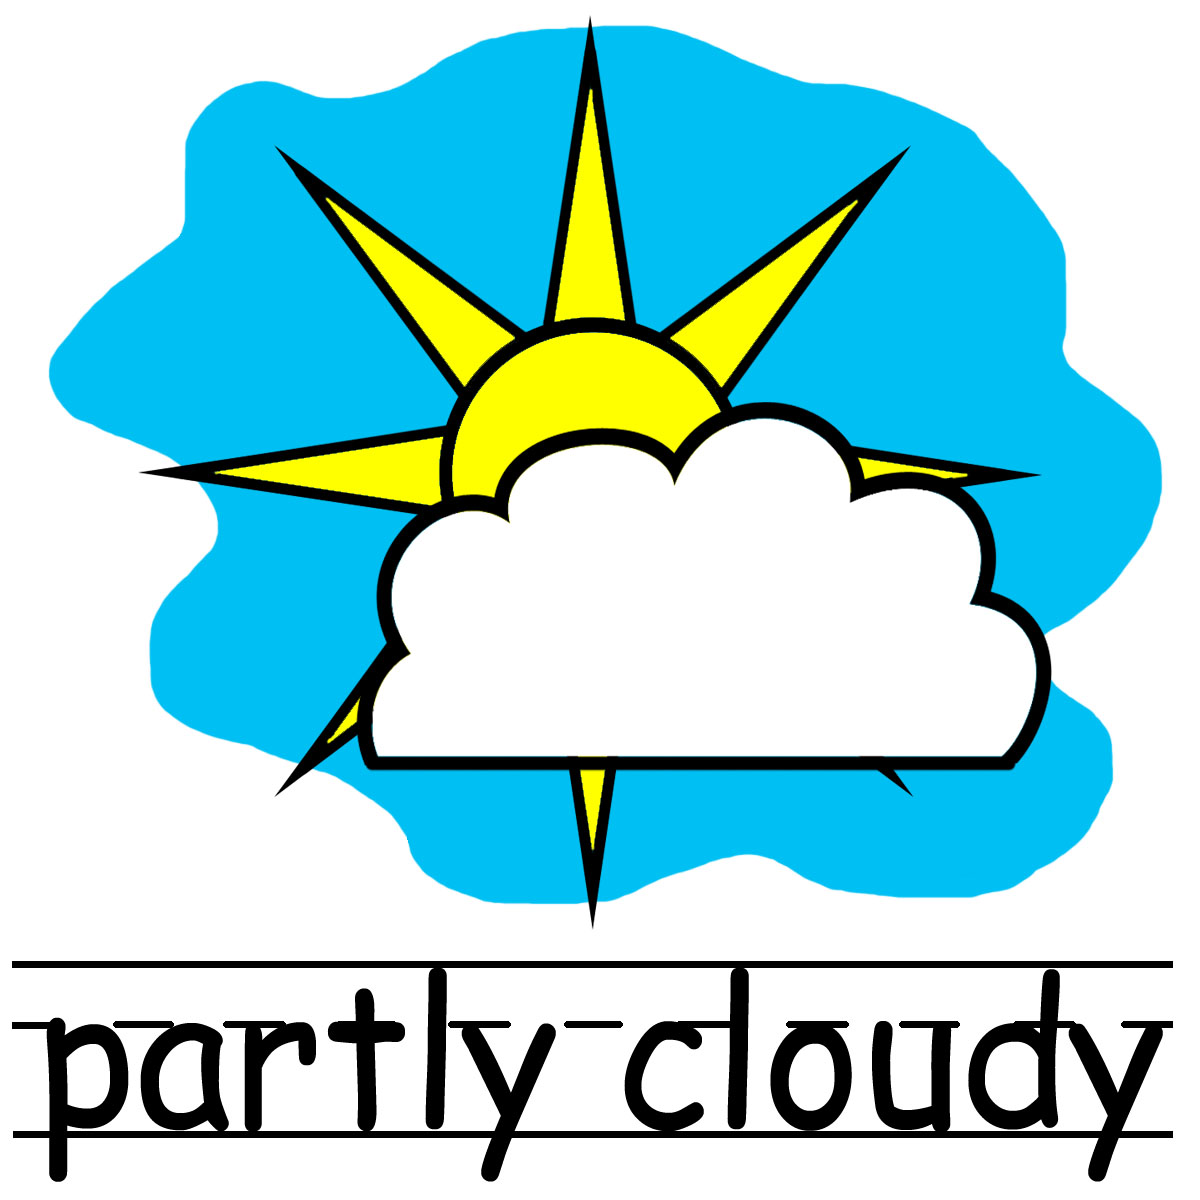 Wind clipart foggy weather Free Clipart Images Art Clipart